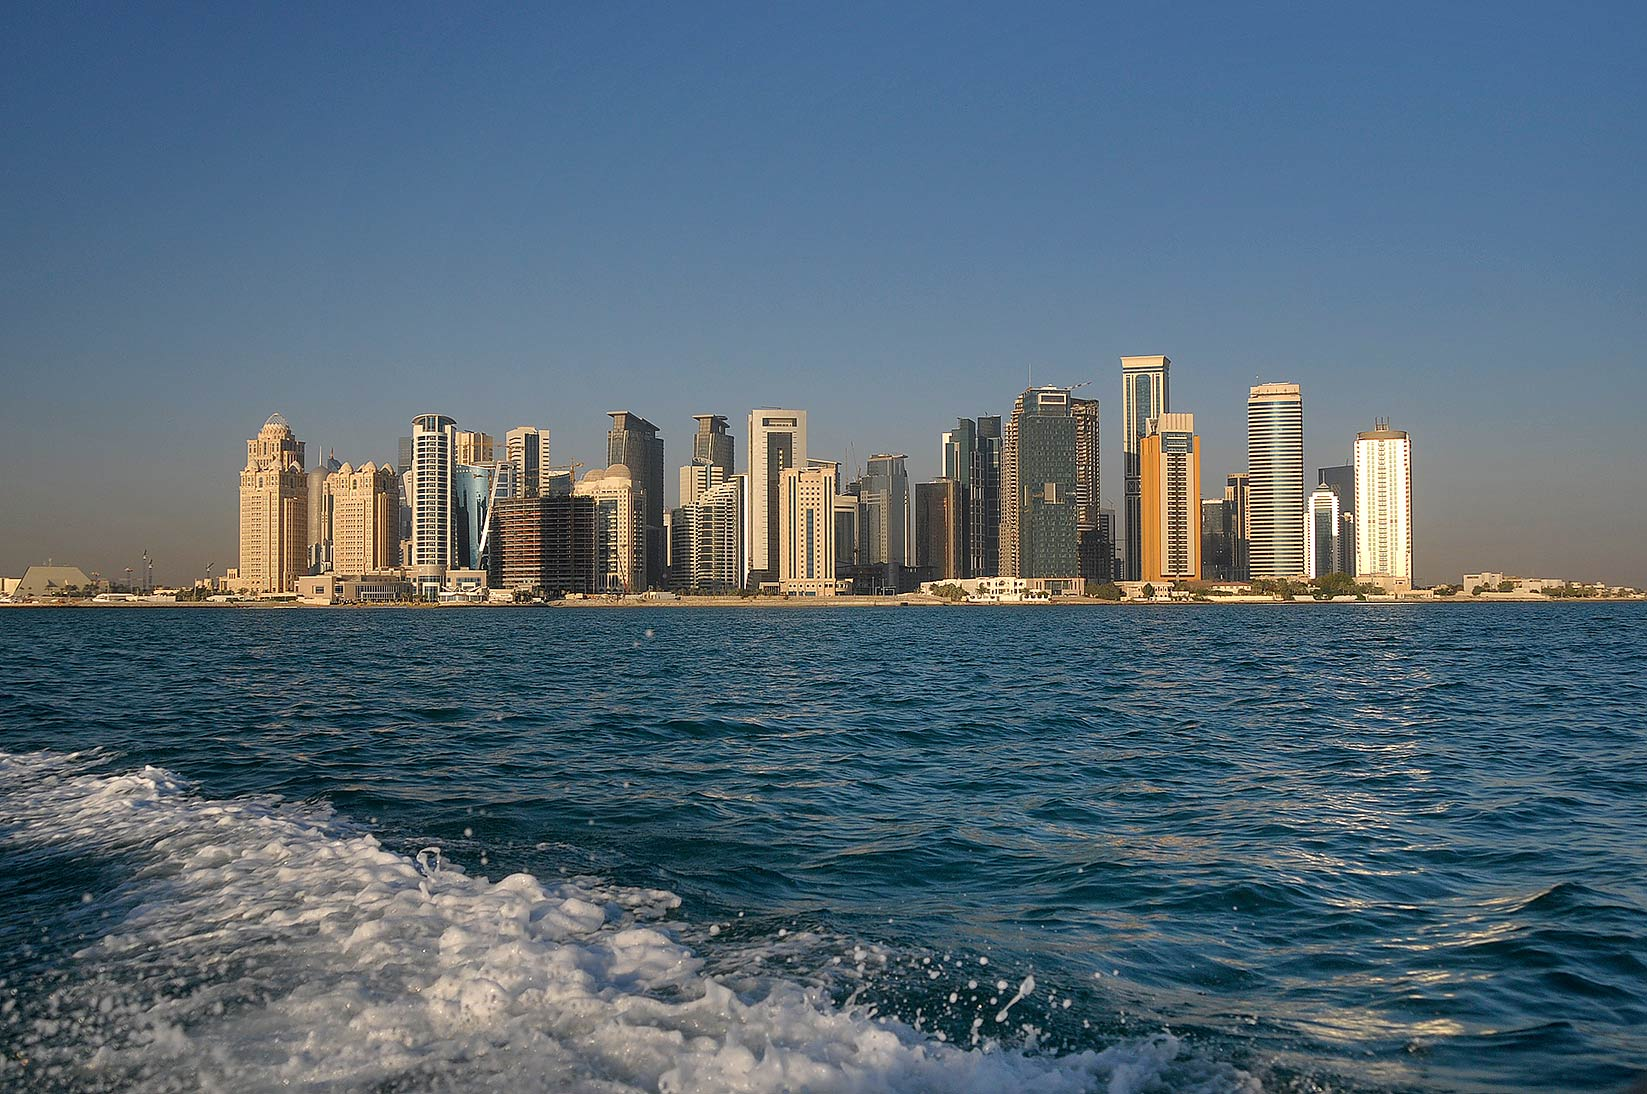 View of West Bay in Doha from a boat. Qatar